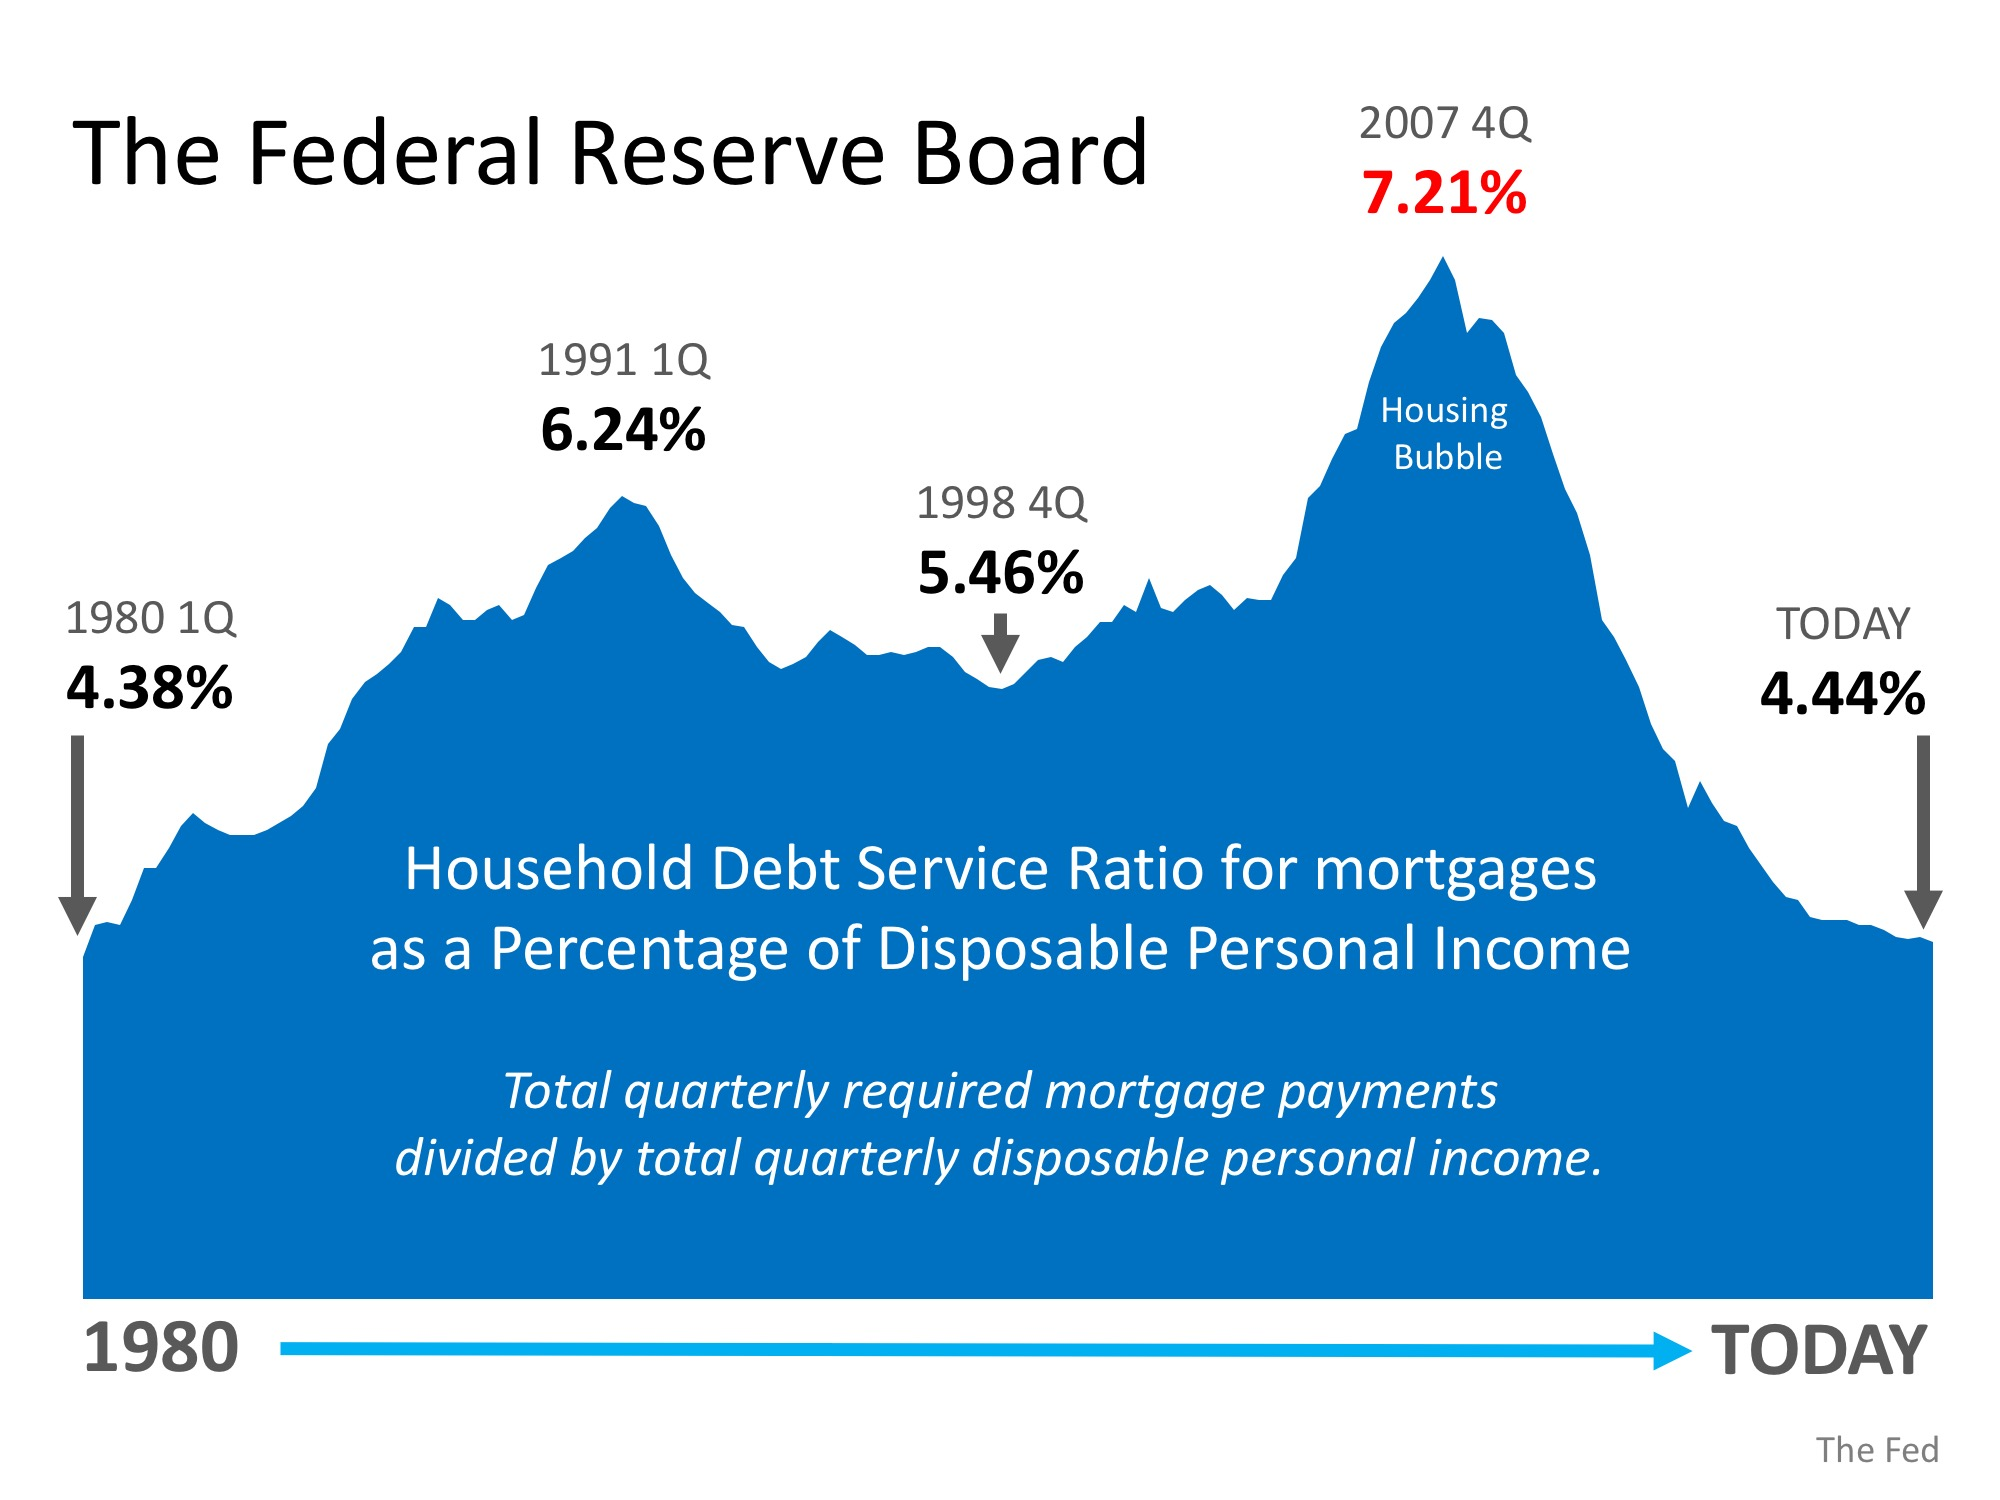 Is Family Mortgage Debt Out of Control?